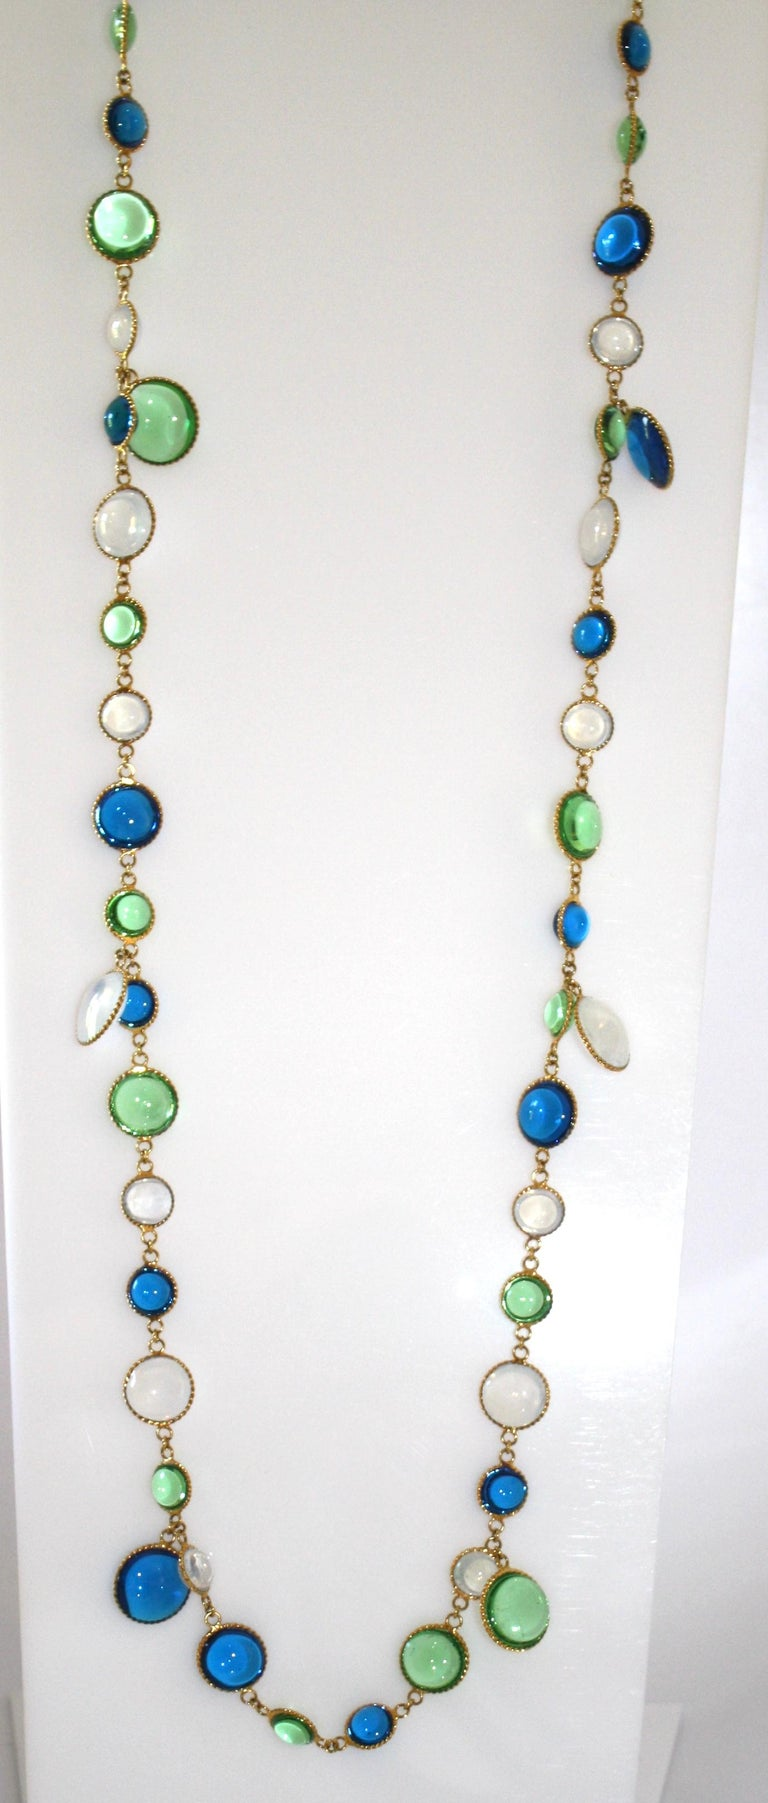 Hand poured glass necklace made in Paris, France.